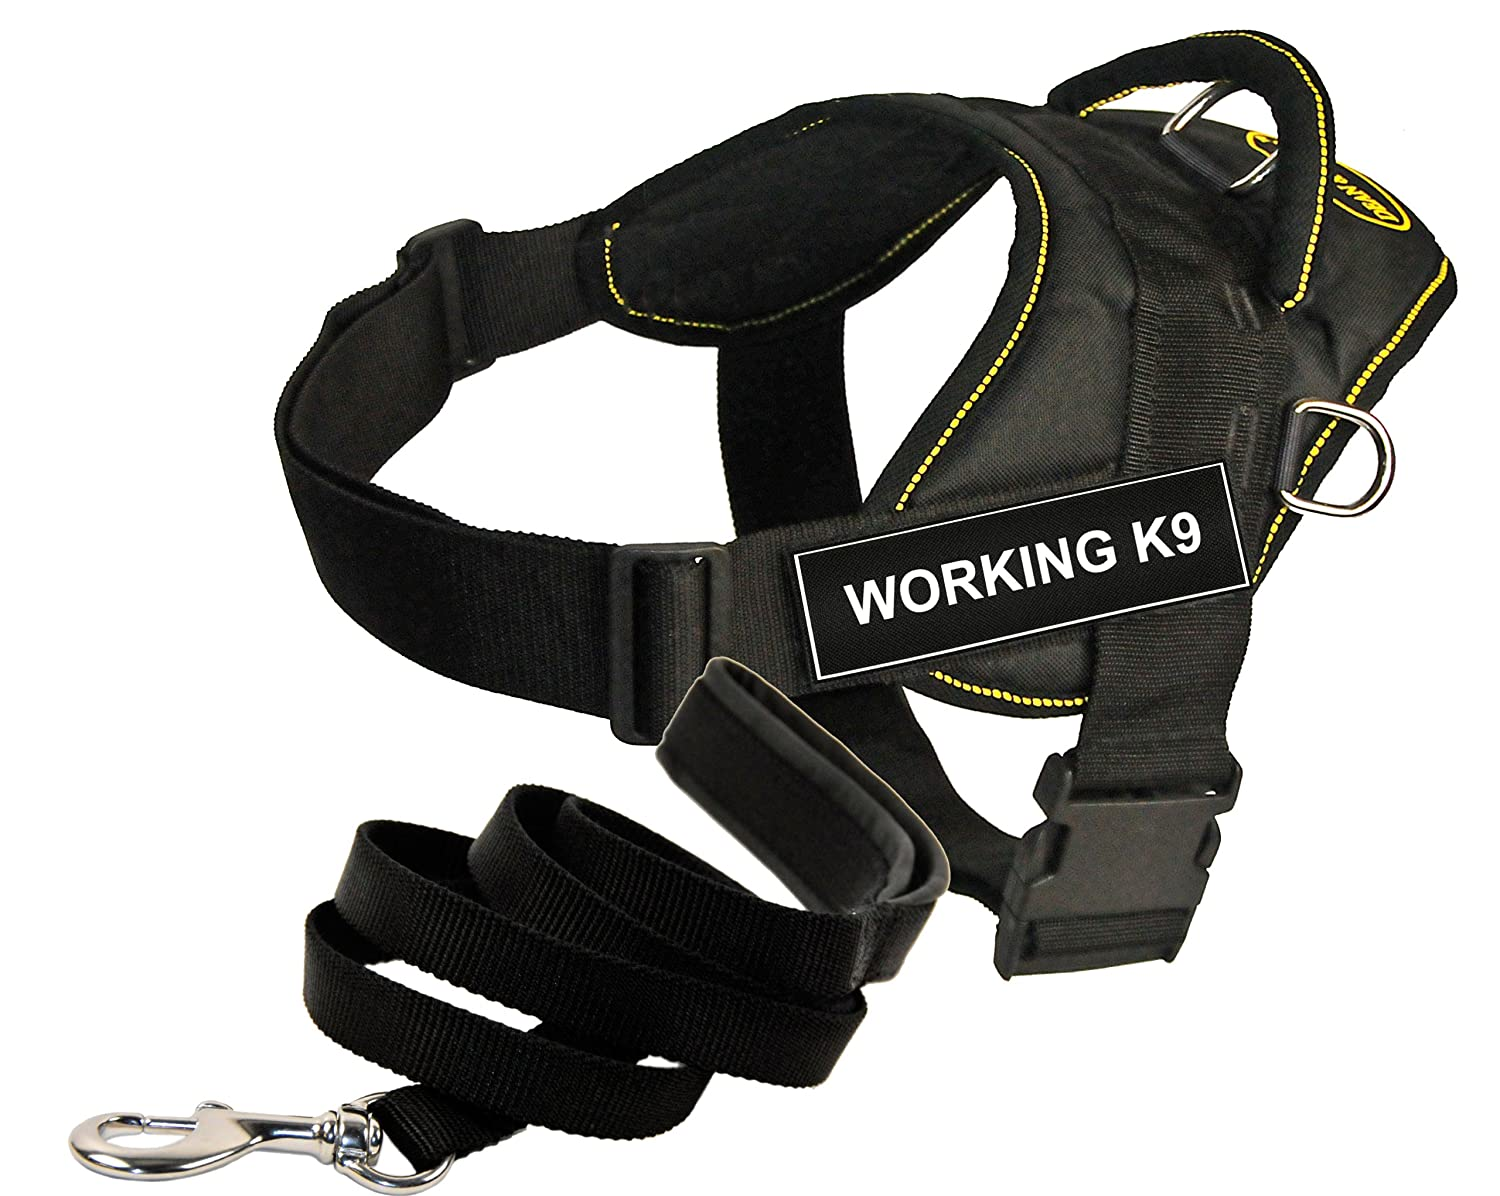 Dean and Tyler Bundle One DT Fun Works  Harness, Working K9, Yellow Trim, XSmall (20 -23 ) + One Padded Puppy  Leash, 6 FT Stainless Snap Black